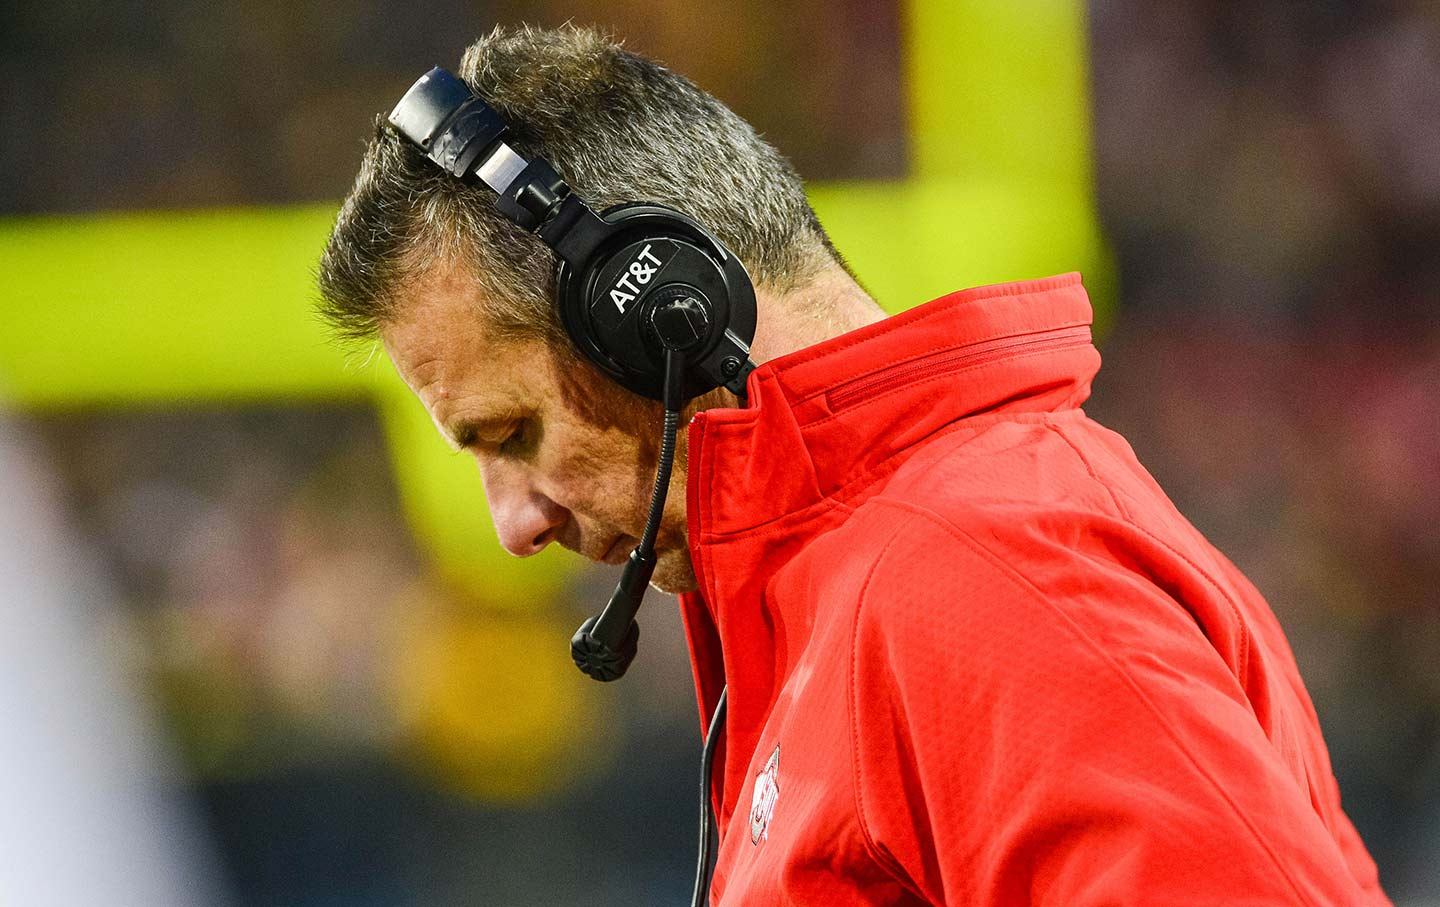 Ohio State trustee resigns after wanting stronger punishment for Urban Meyer